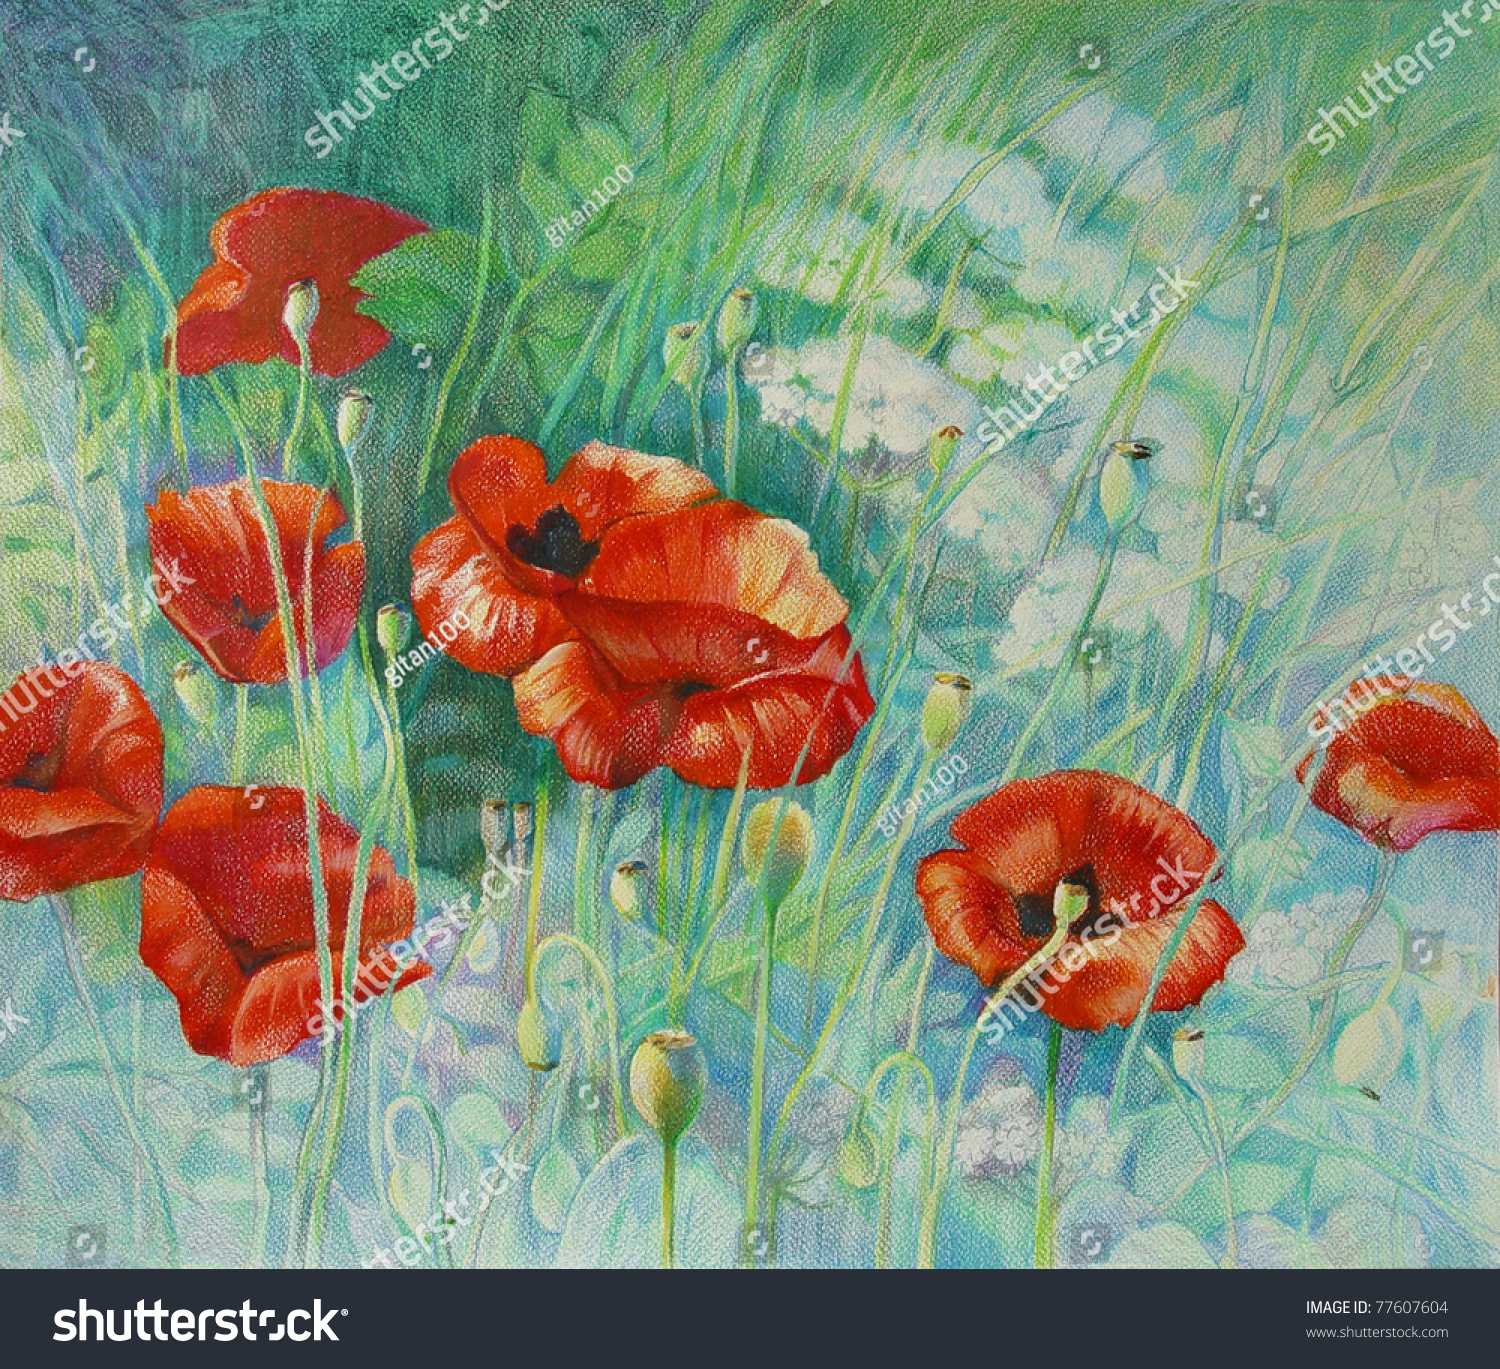 Poppies Color Pencil Drawing Stock Illustration 77607604 - Shutterstock